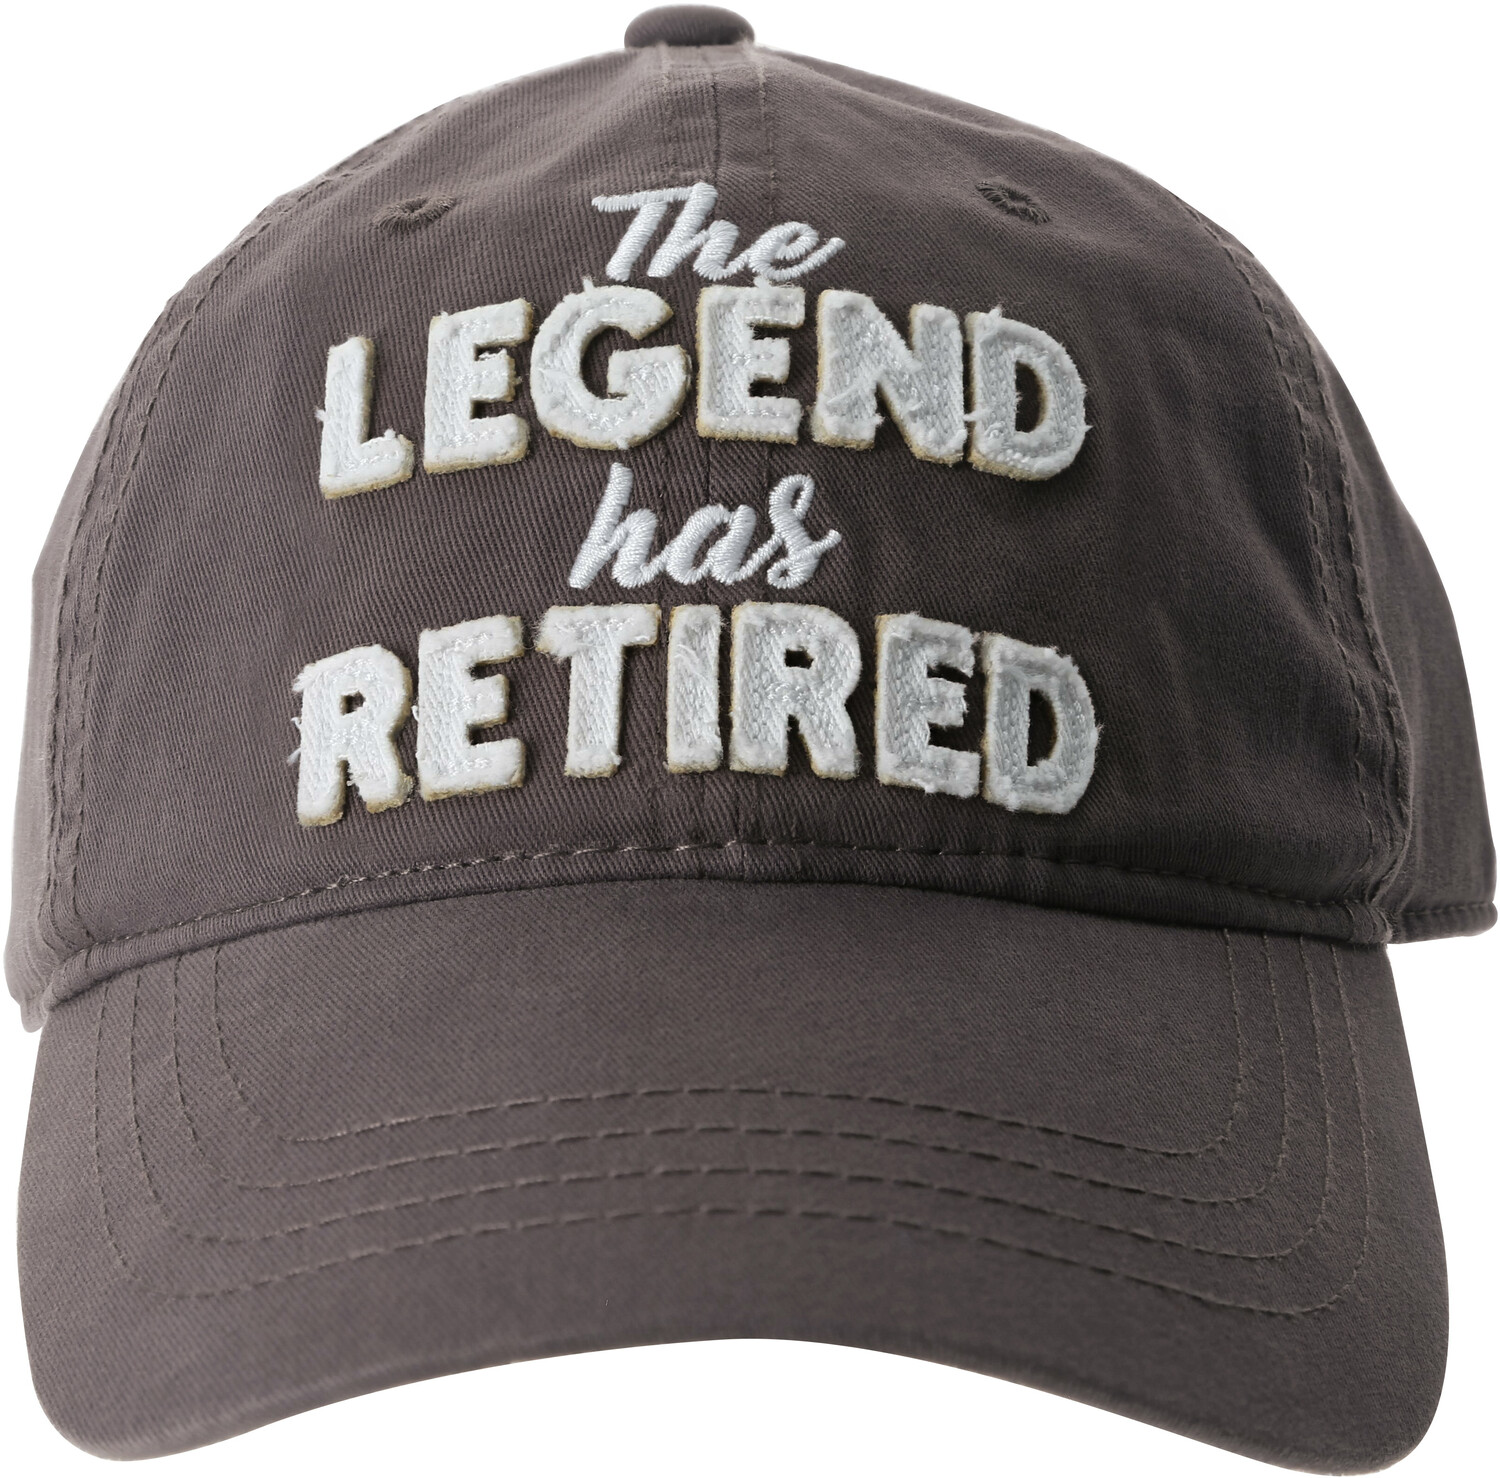 The Legend by Retired Life - The Legend - Gray Adjustable Hat